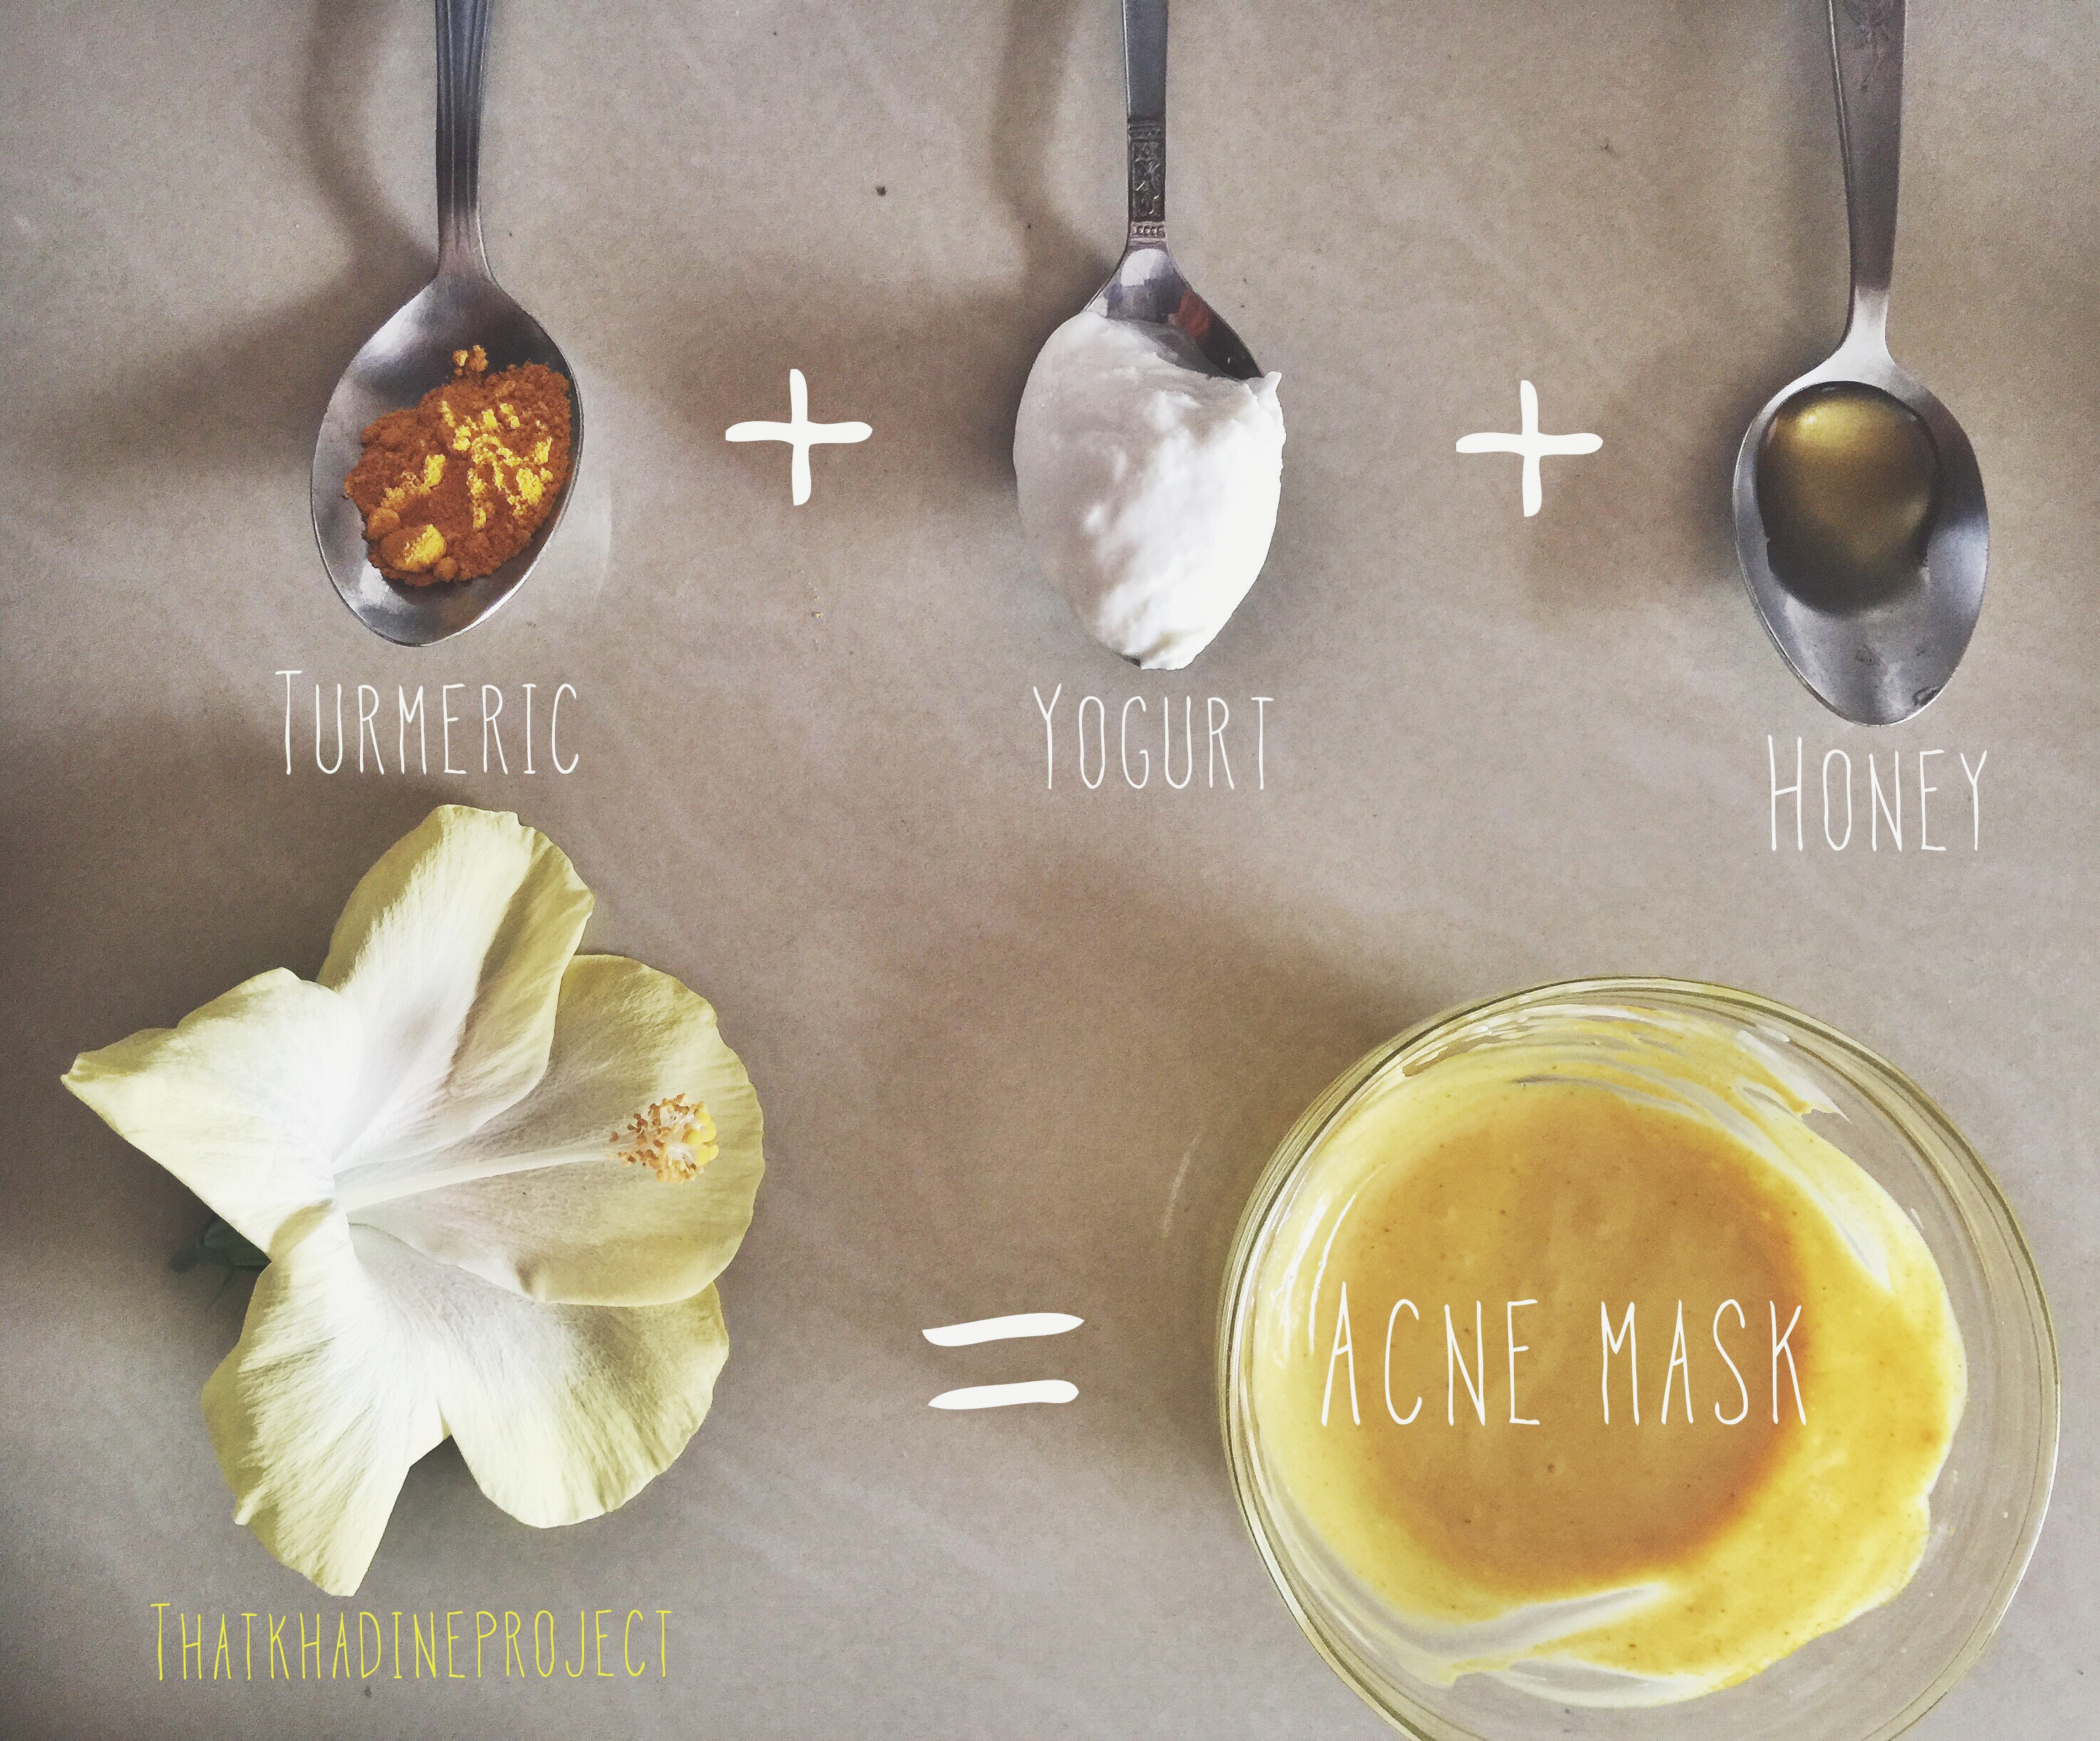 DIY Turmeric Face Mask (Acne & Dark Spots) | That Khadine Project